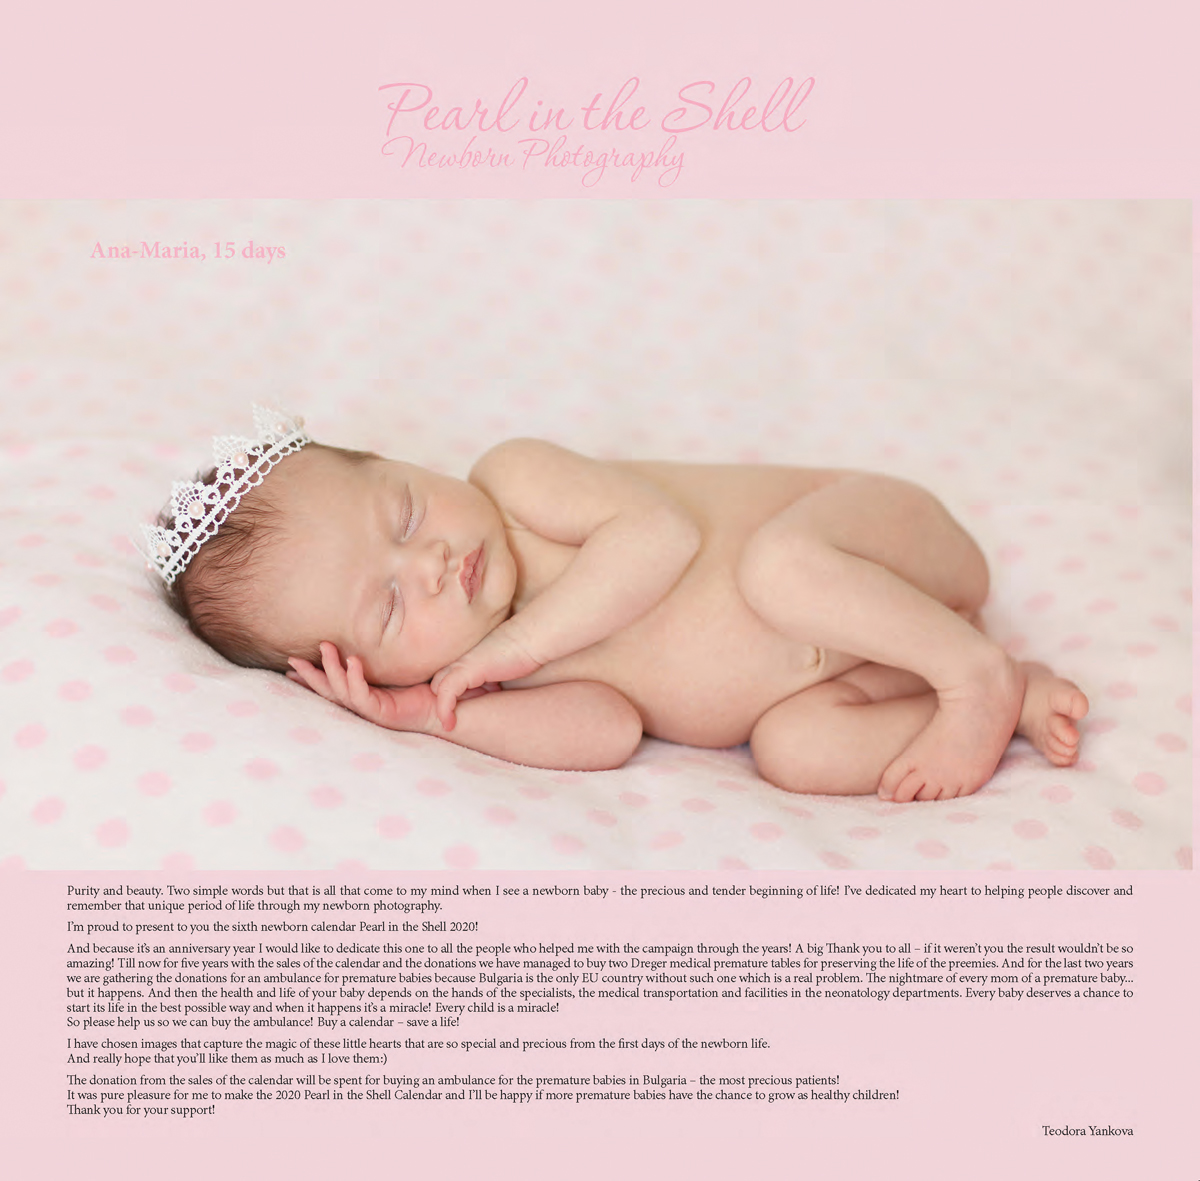 Pearl-in-the-Shell-Calendar-2020 (3)